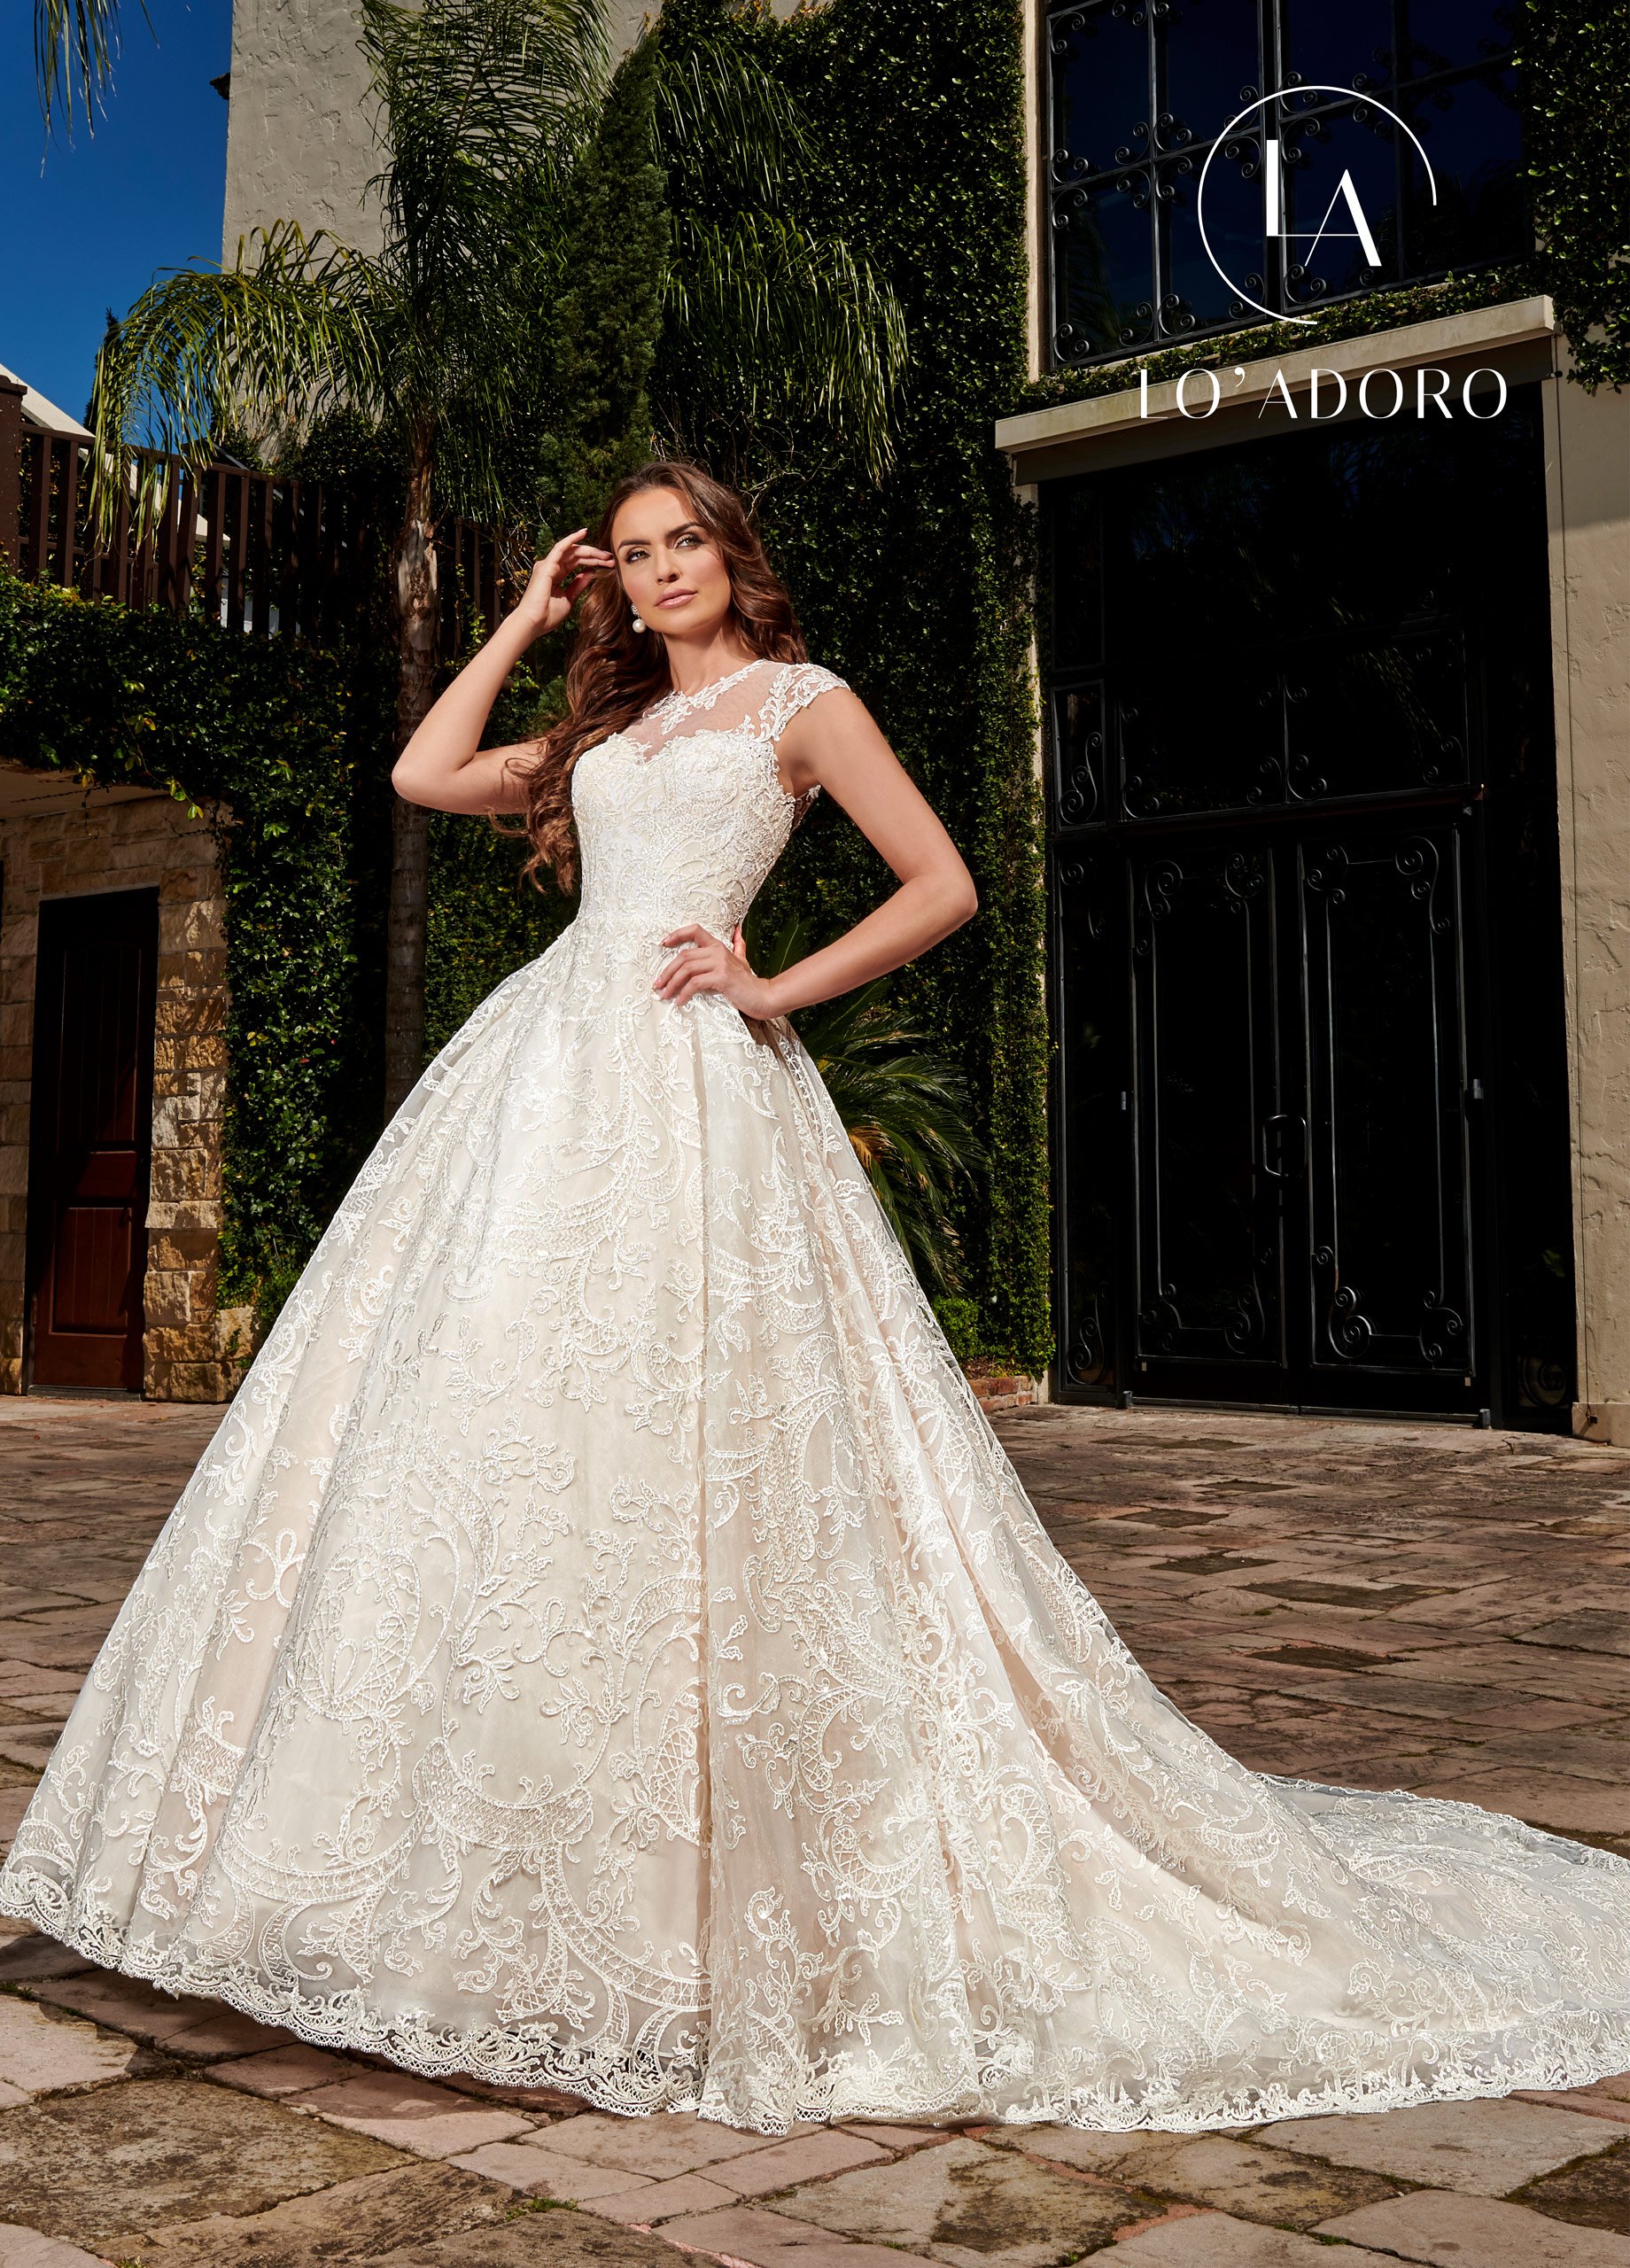 Lace A-Line Lo' Adoro Bridal in White Color